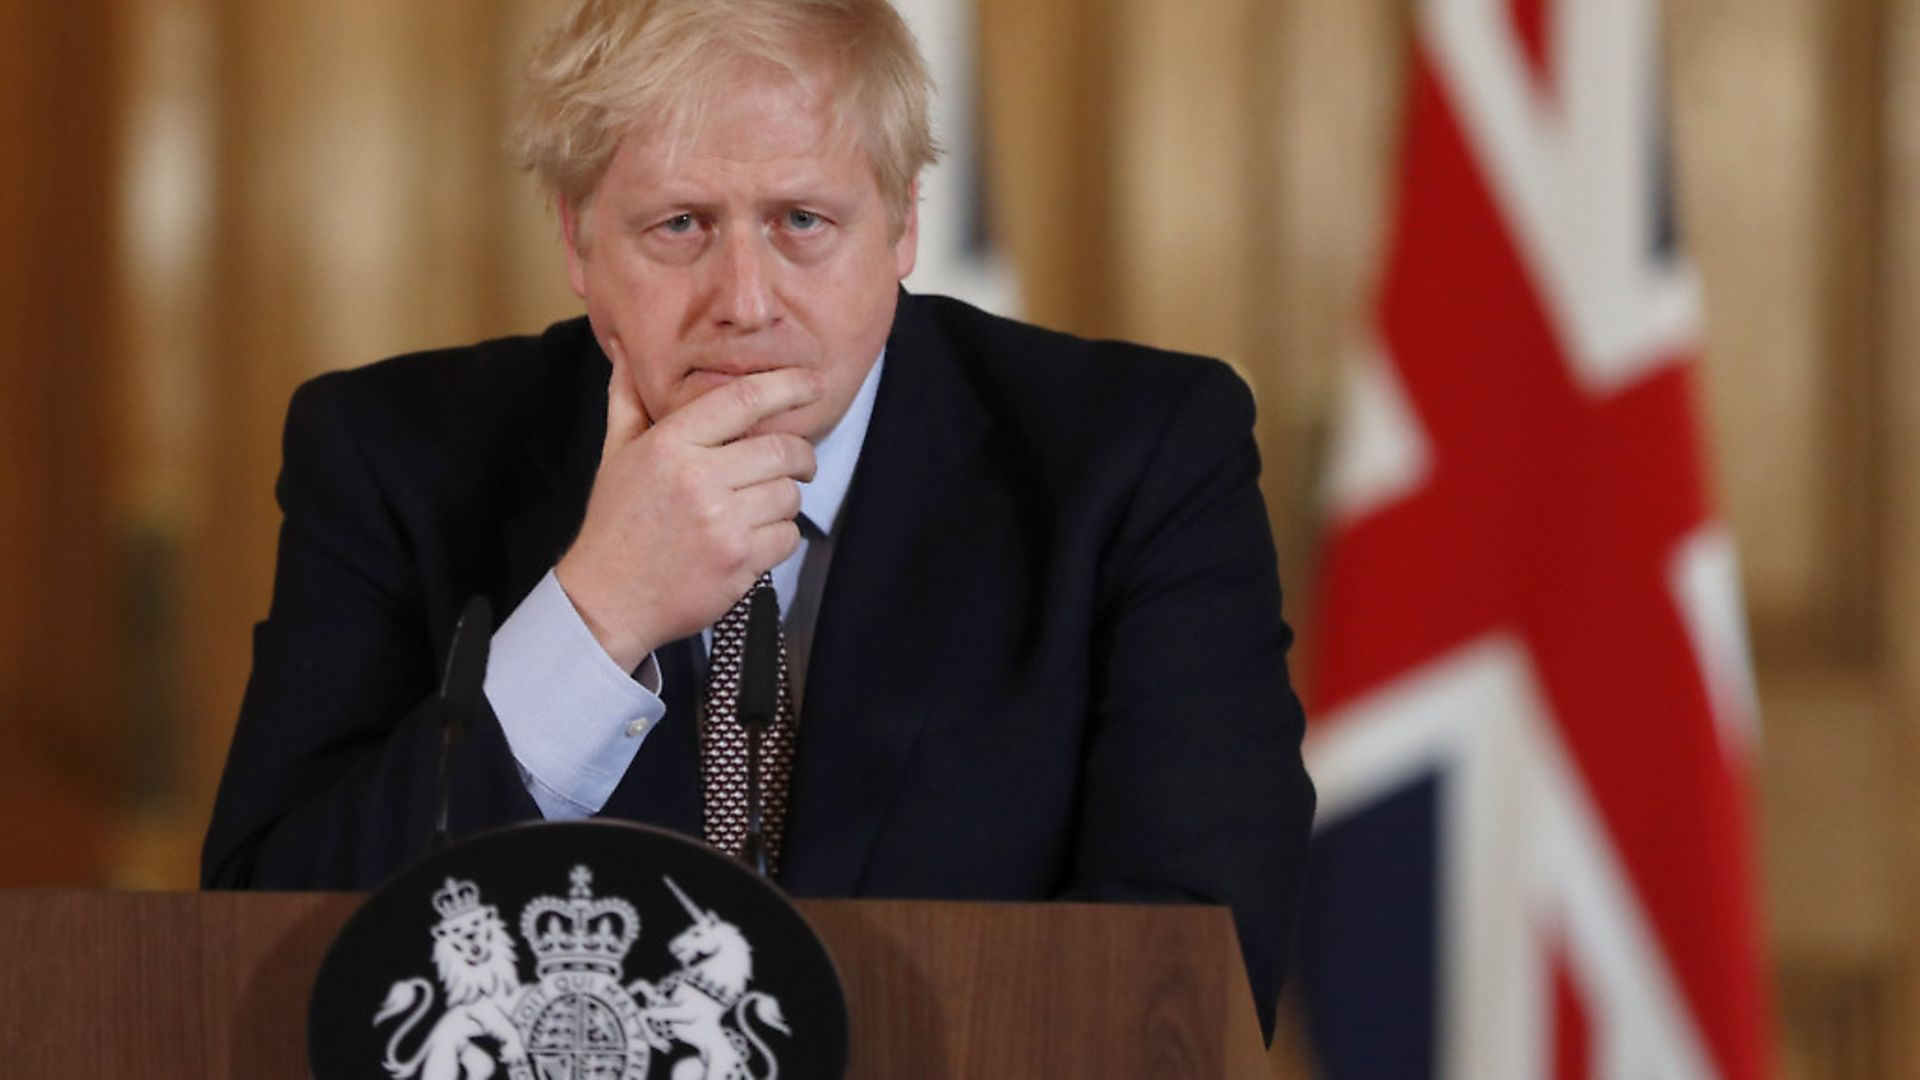 Prime Minister Boris Johnson speaks during a press conference, at 10 Downing Street. Photograph: Frank Augstein/PA Wire. - Credit: PA